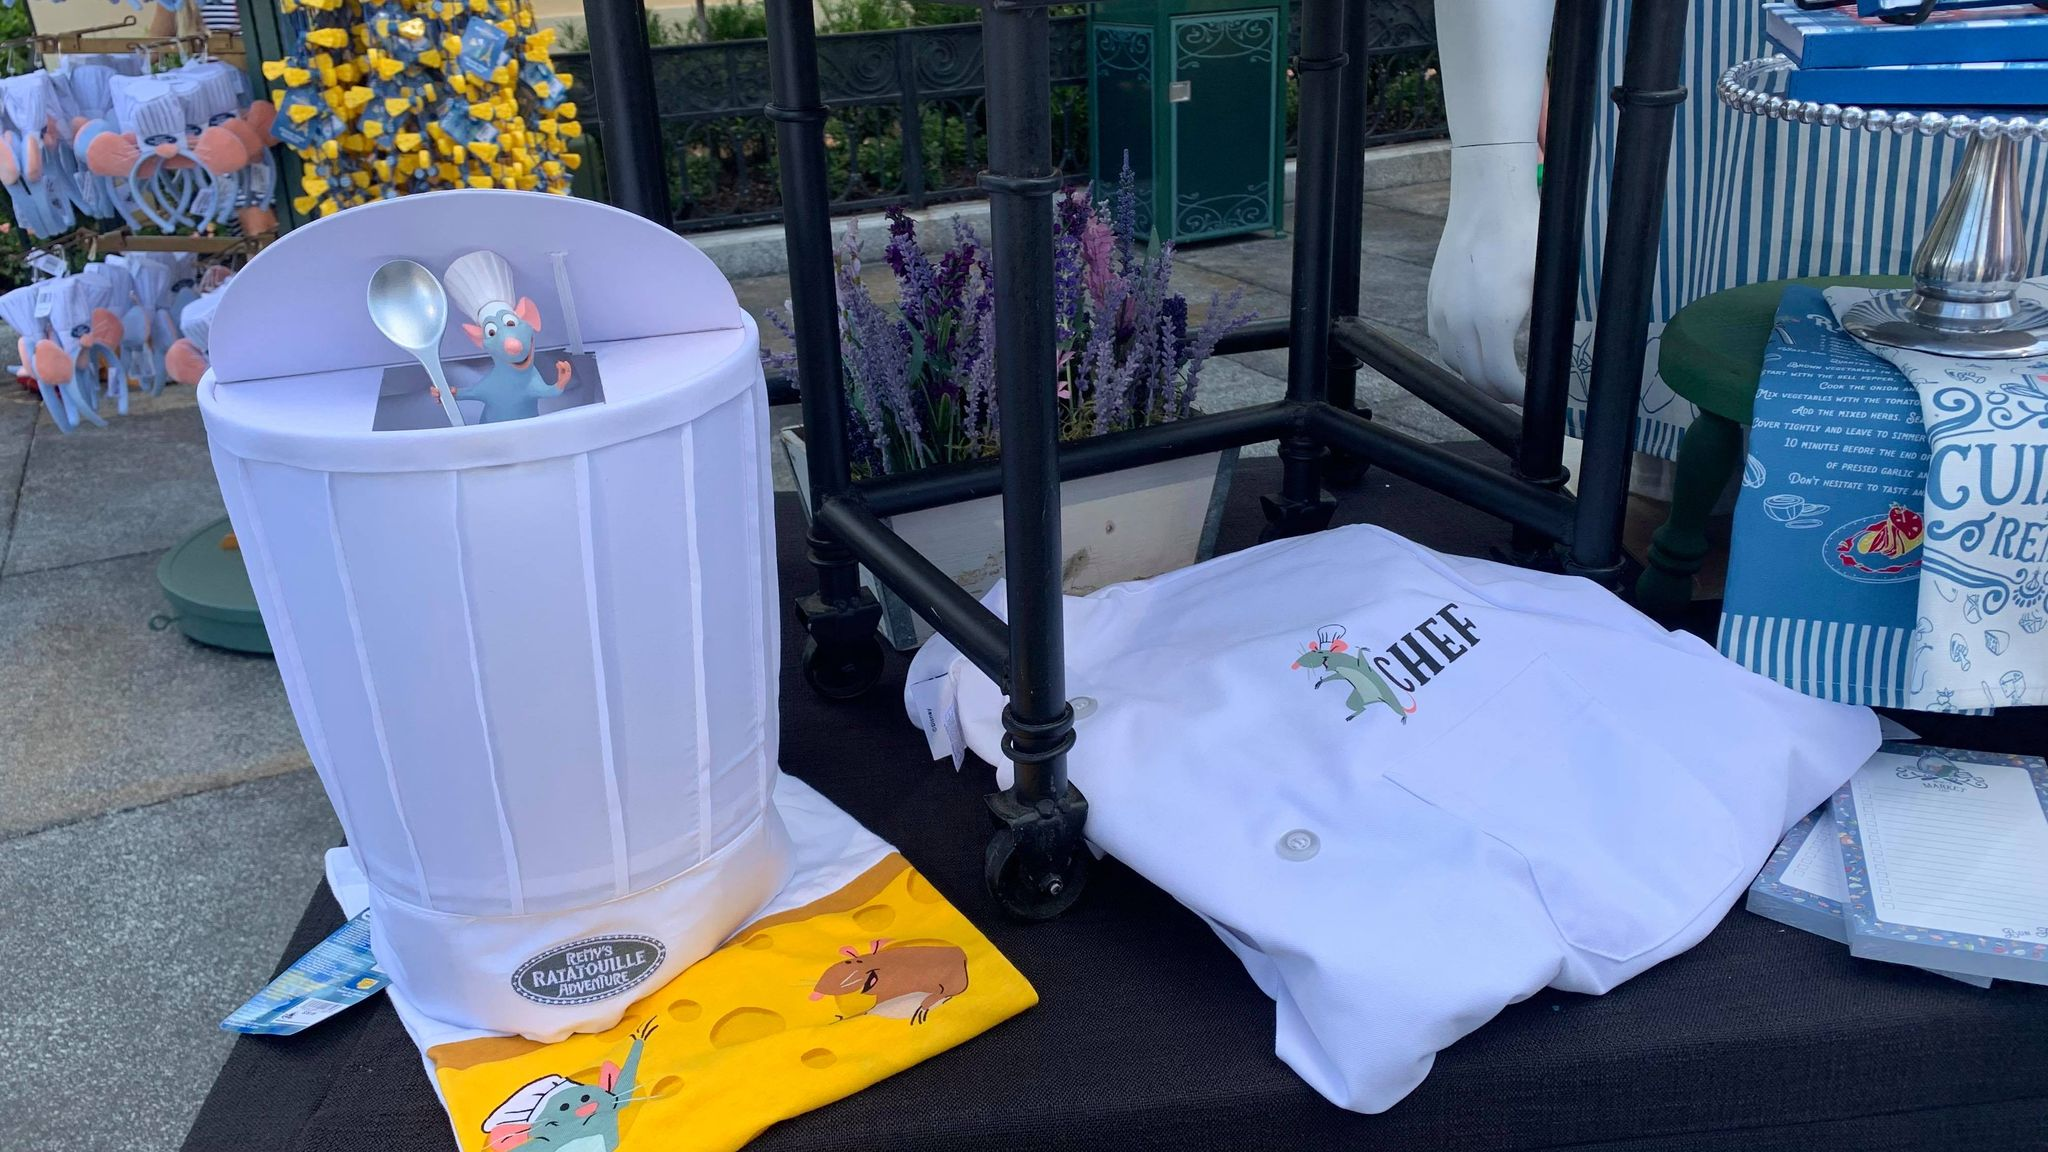 First look at the new Remy's Ratatouille Adventure line of merch coming soon! 11